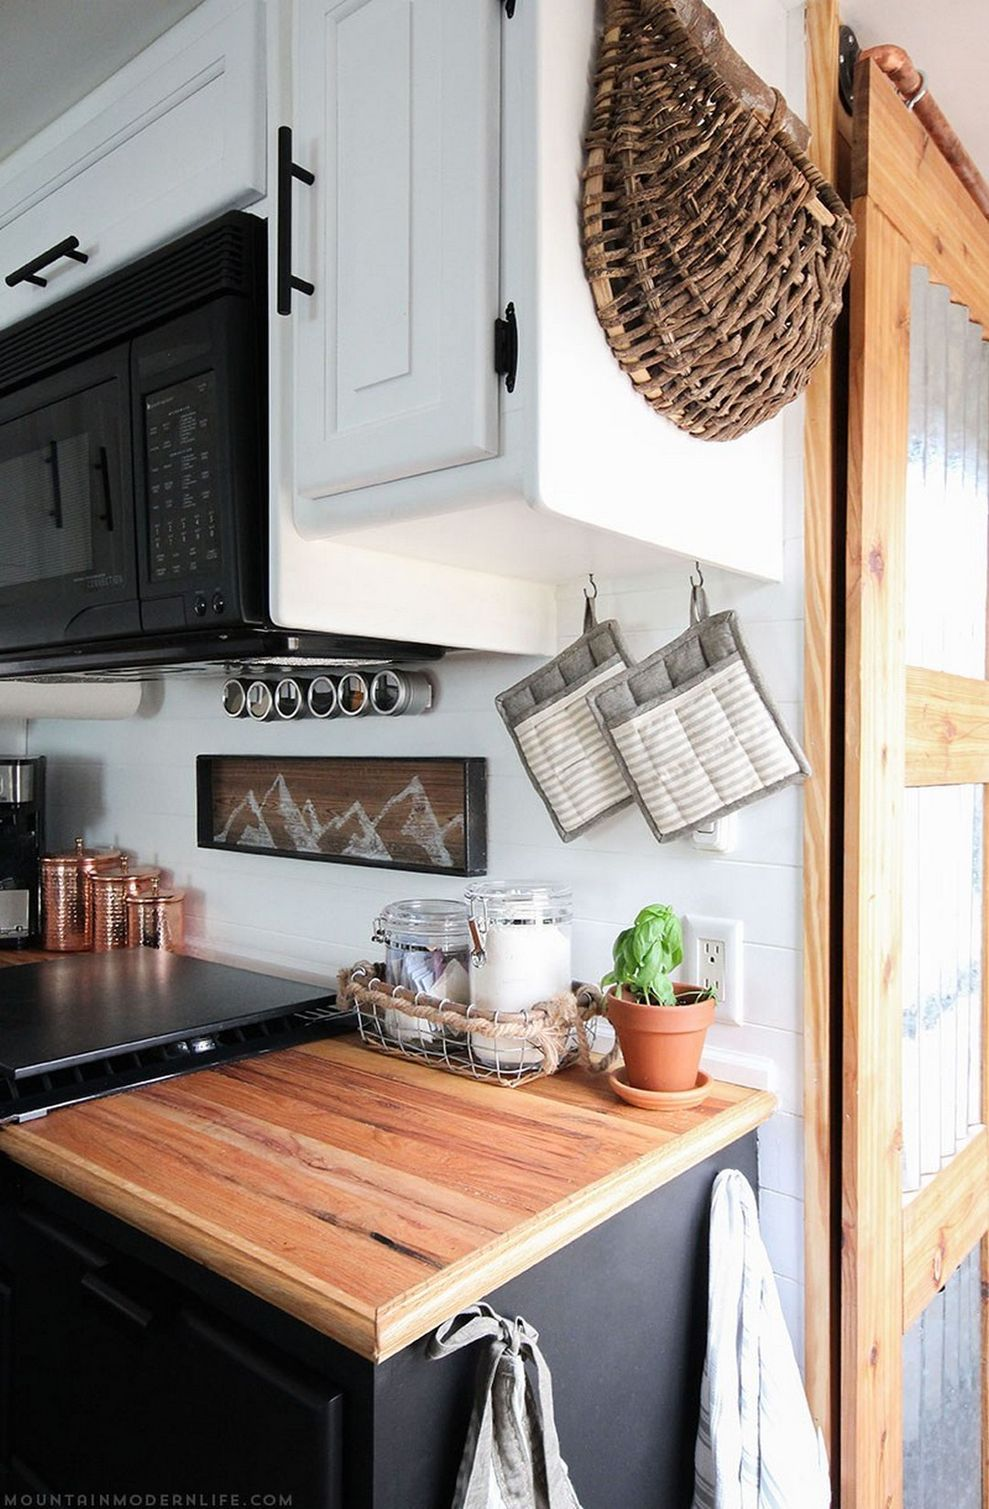 20+ Incredibly Awesome RV Hacks and Remodel Ideas